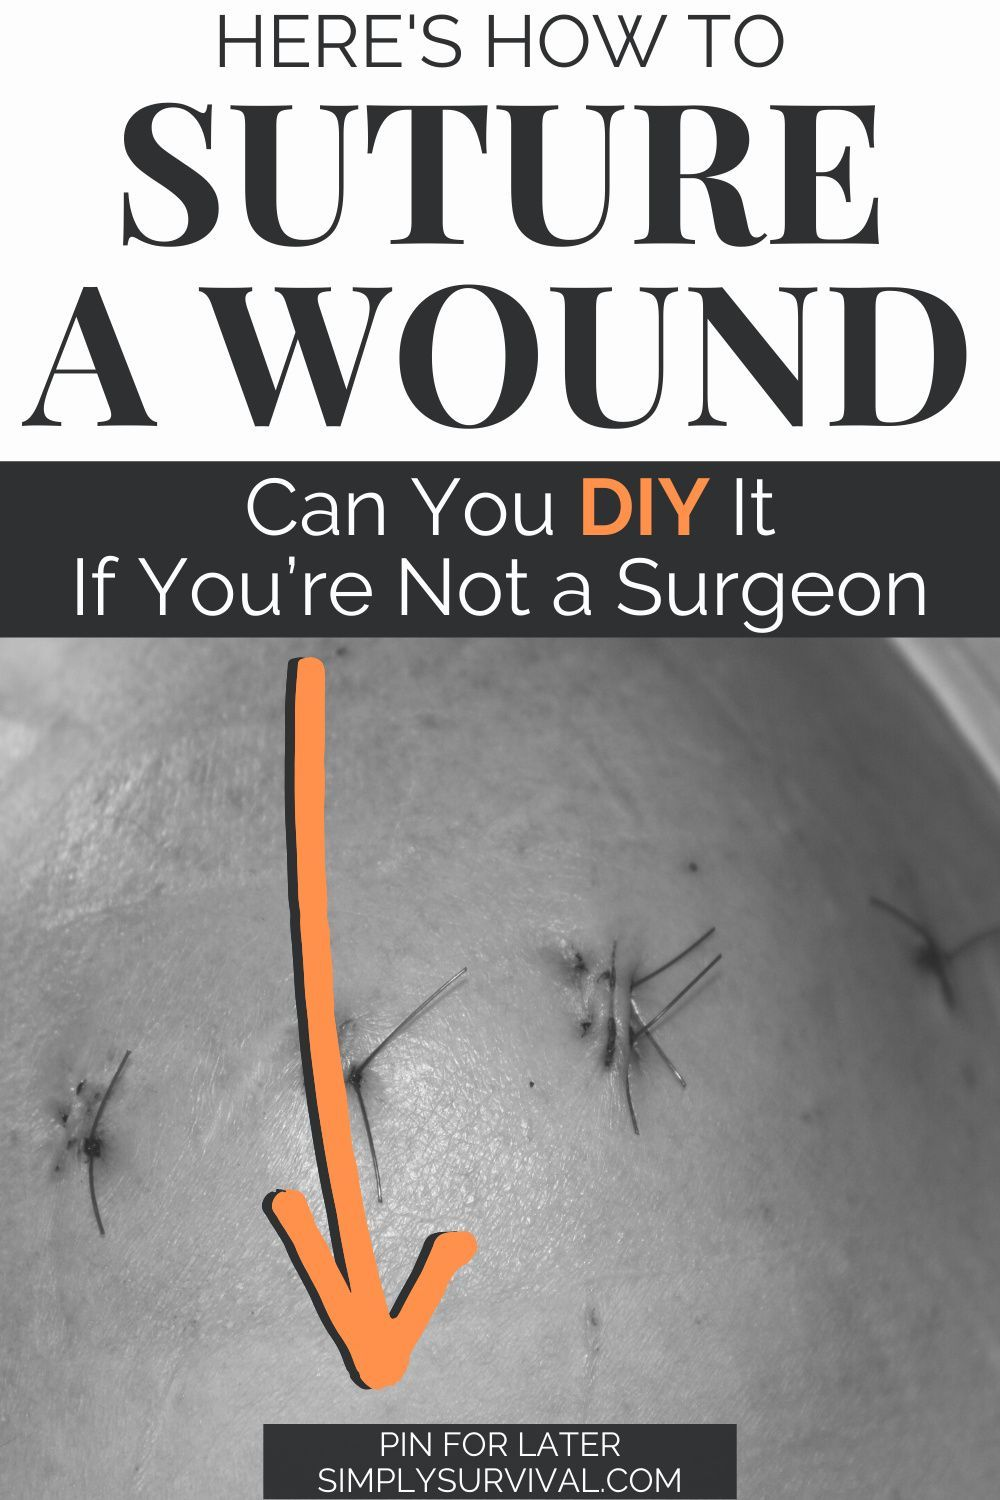 Complete Guide To Mastering Suturing Techniques Suture Techniques Survival Skills Medical Knowledge